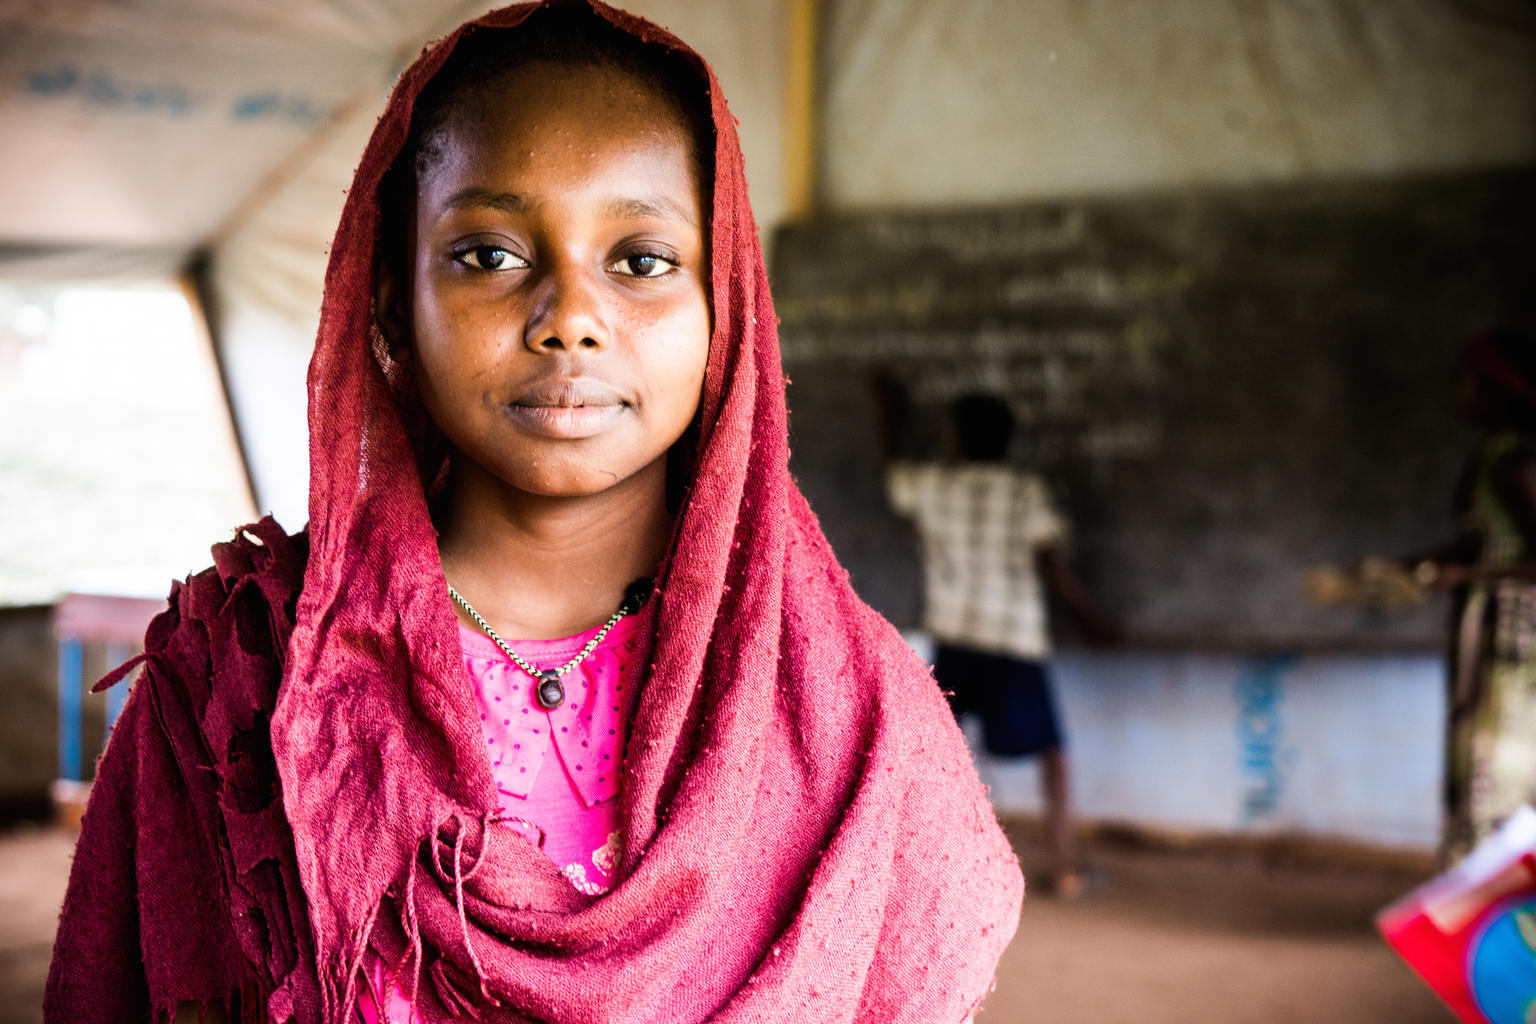 Faozea Mahmout, 14, at the school she attends in Danamadja, southern Chad.